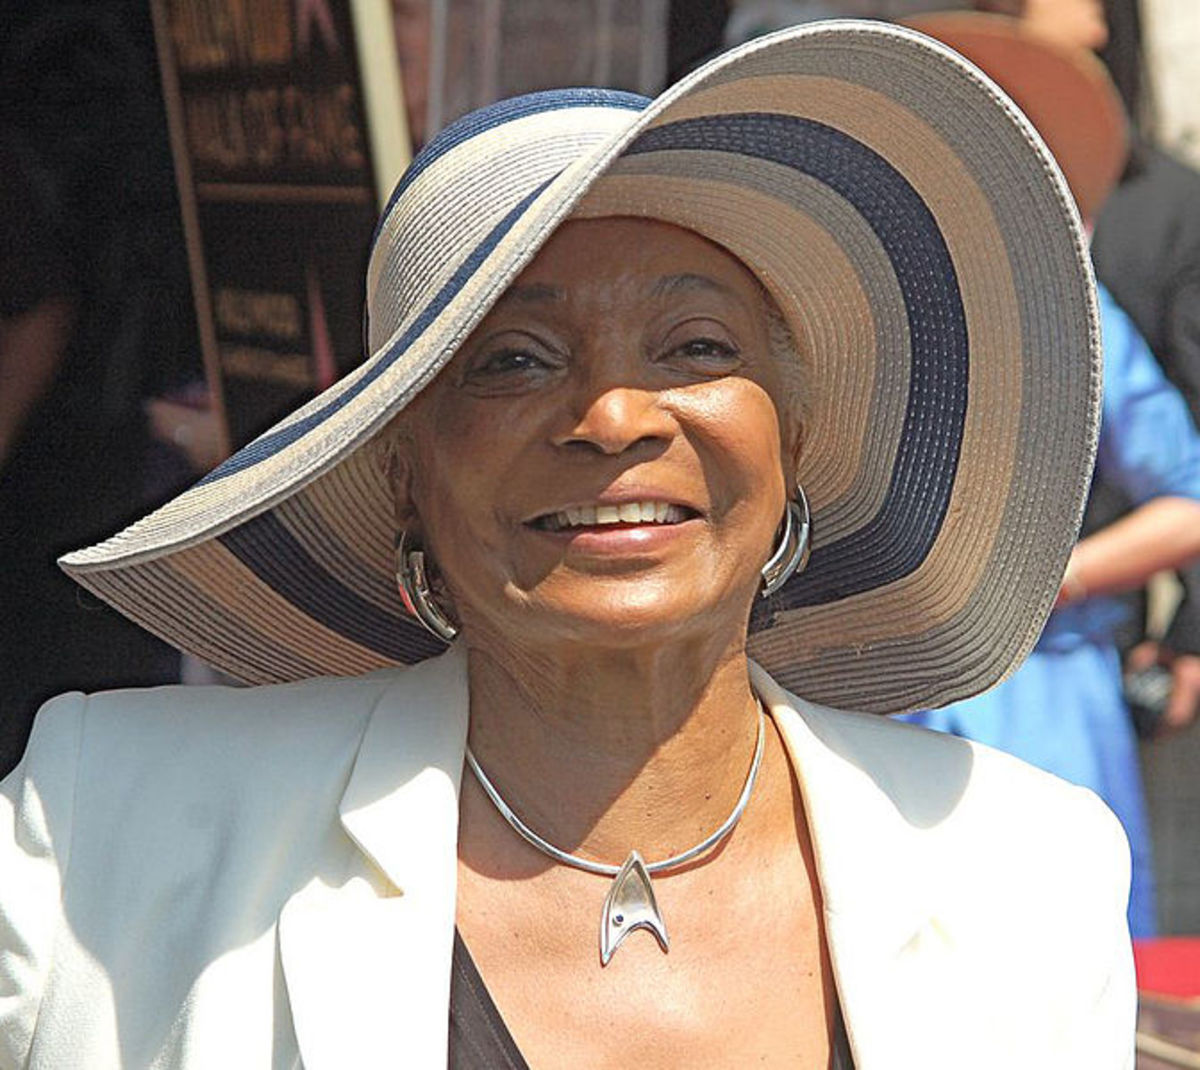 Nichelle Nichols in 2012 at age 81. She recuited astronauts for NASA in the 1970s and 1980s.